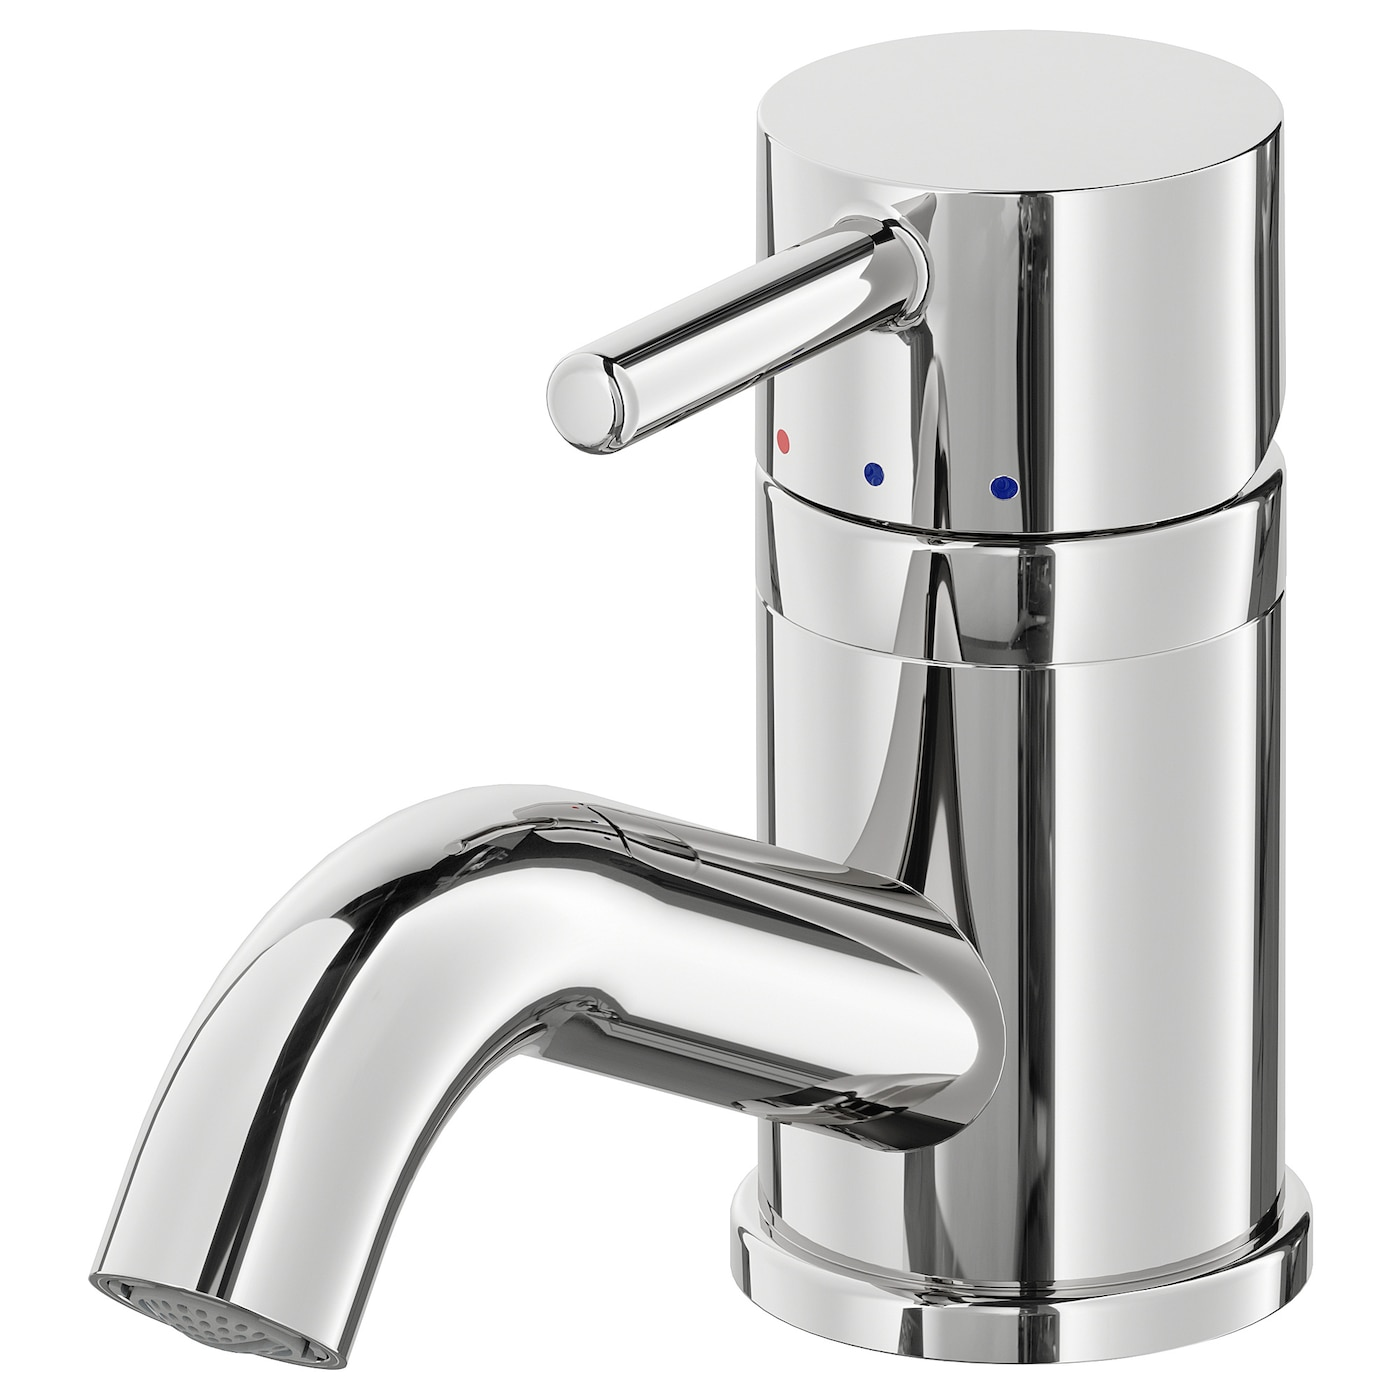 IKEA PILKÅN wash-basin mixer tap with strainer